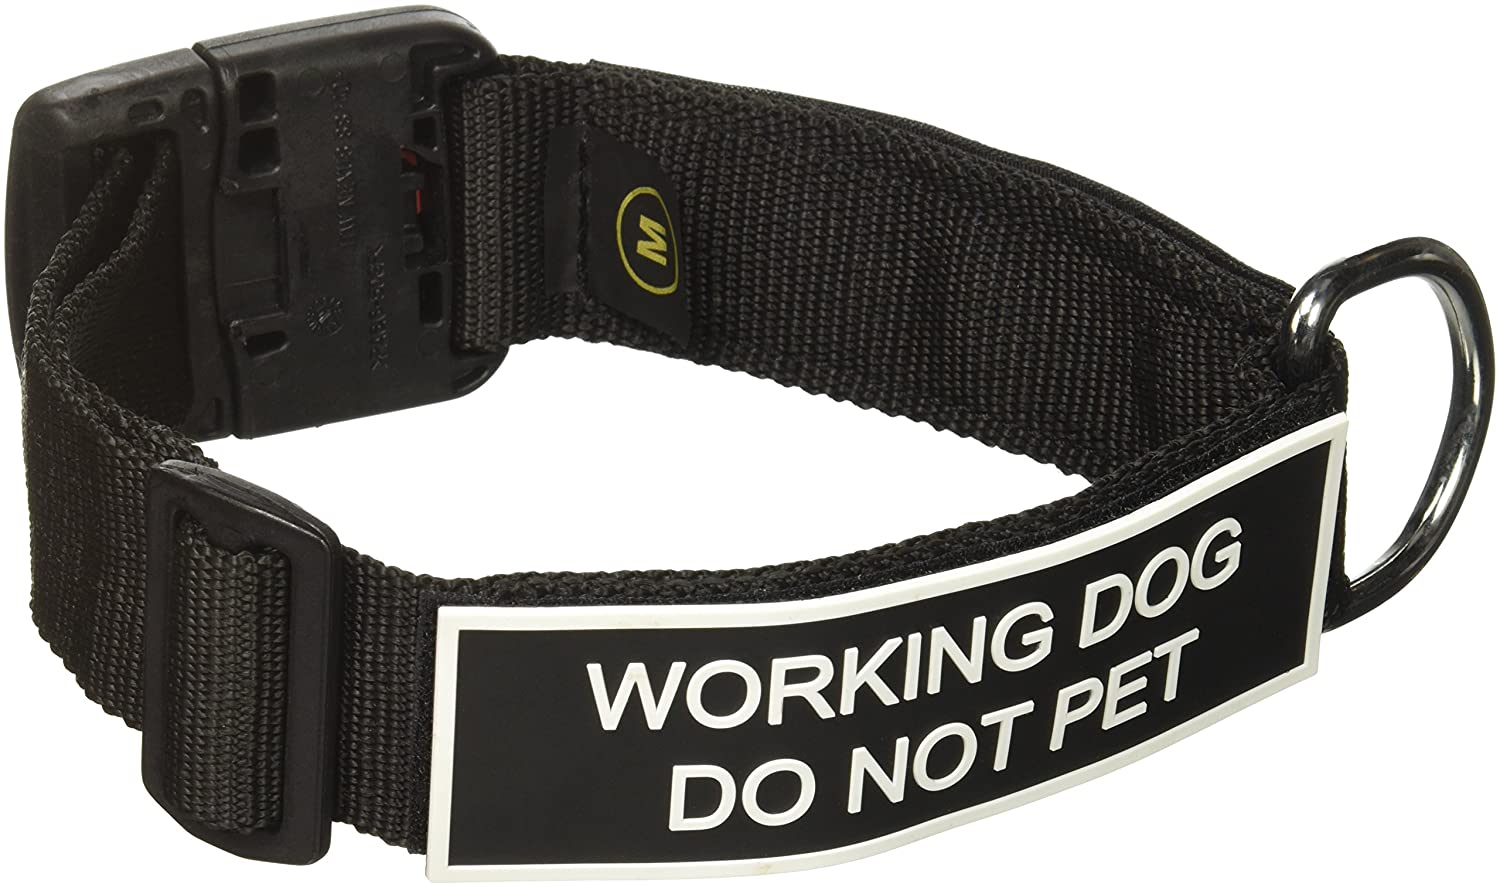 Dean and Tyler Patch Collar , Nylon Dog Collar with Working Dog DO NOT PET Patches Black Size  Medium Fits Neck 21-Inch to 26-Inch